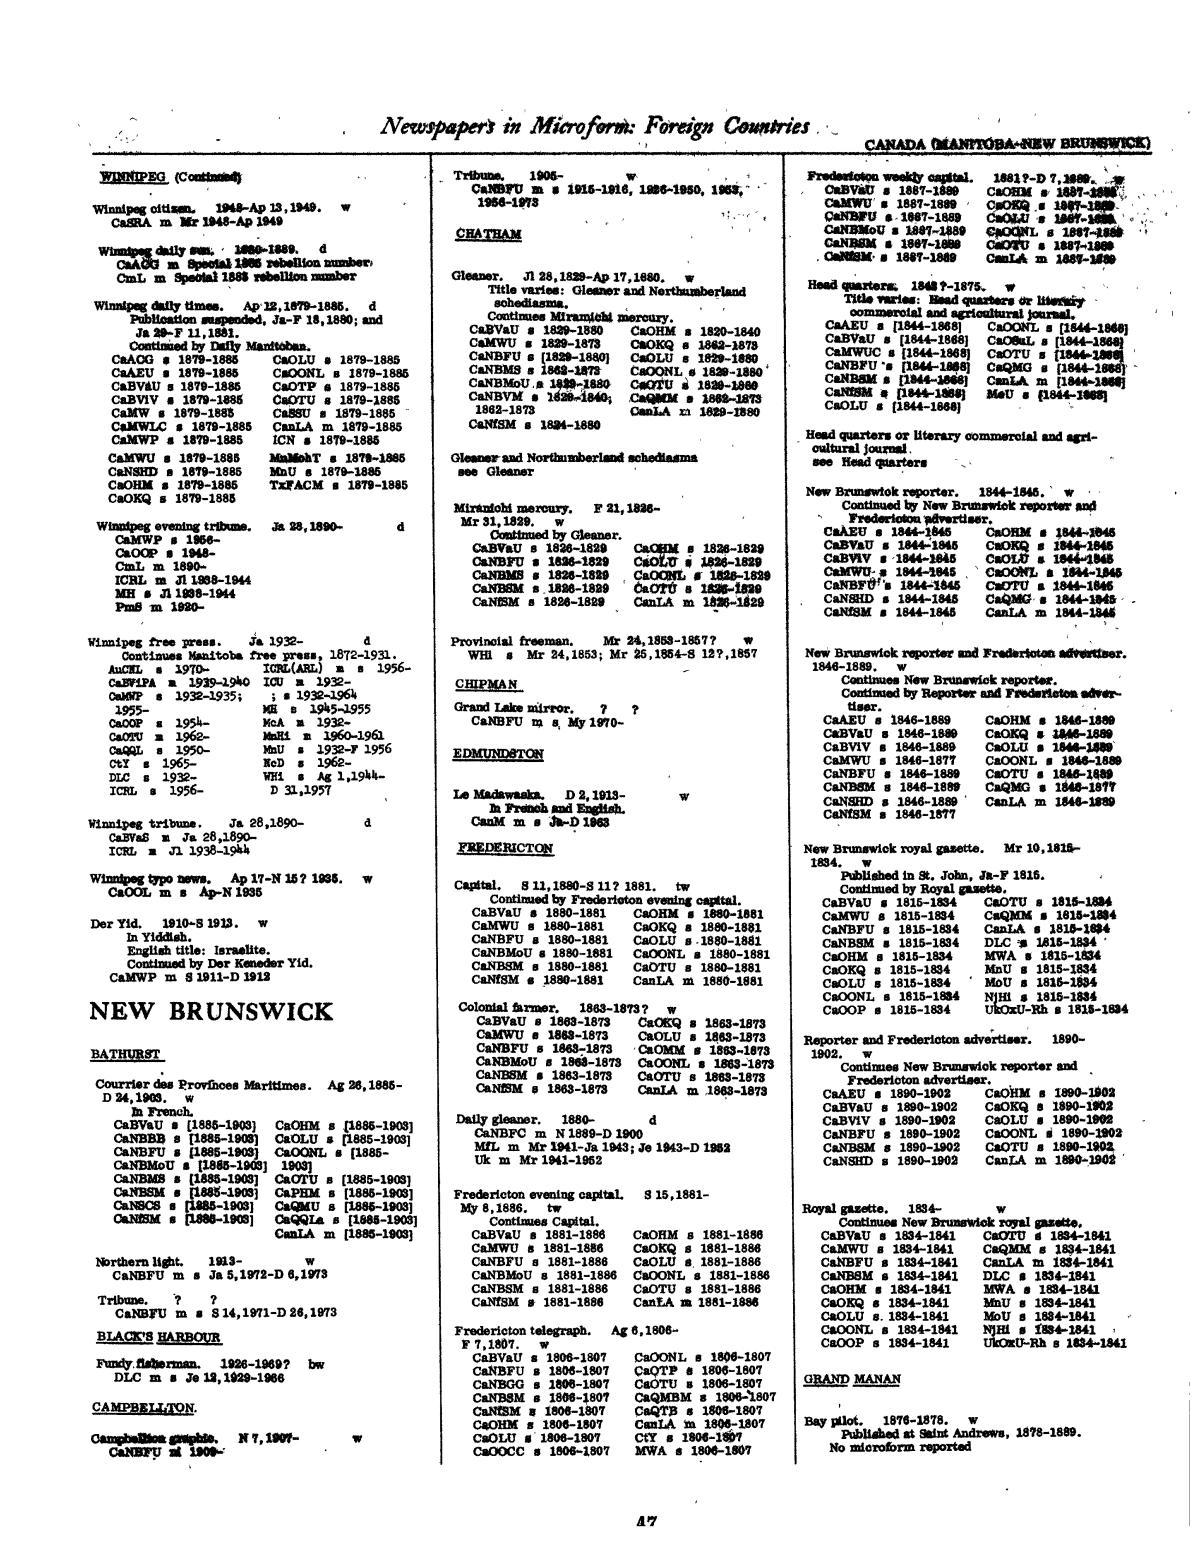 Library of Congress Catalogs: Newspapers in Microform, Foreign Countries, 1948-1983                                                                                                      47